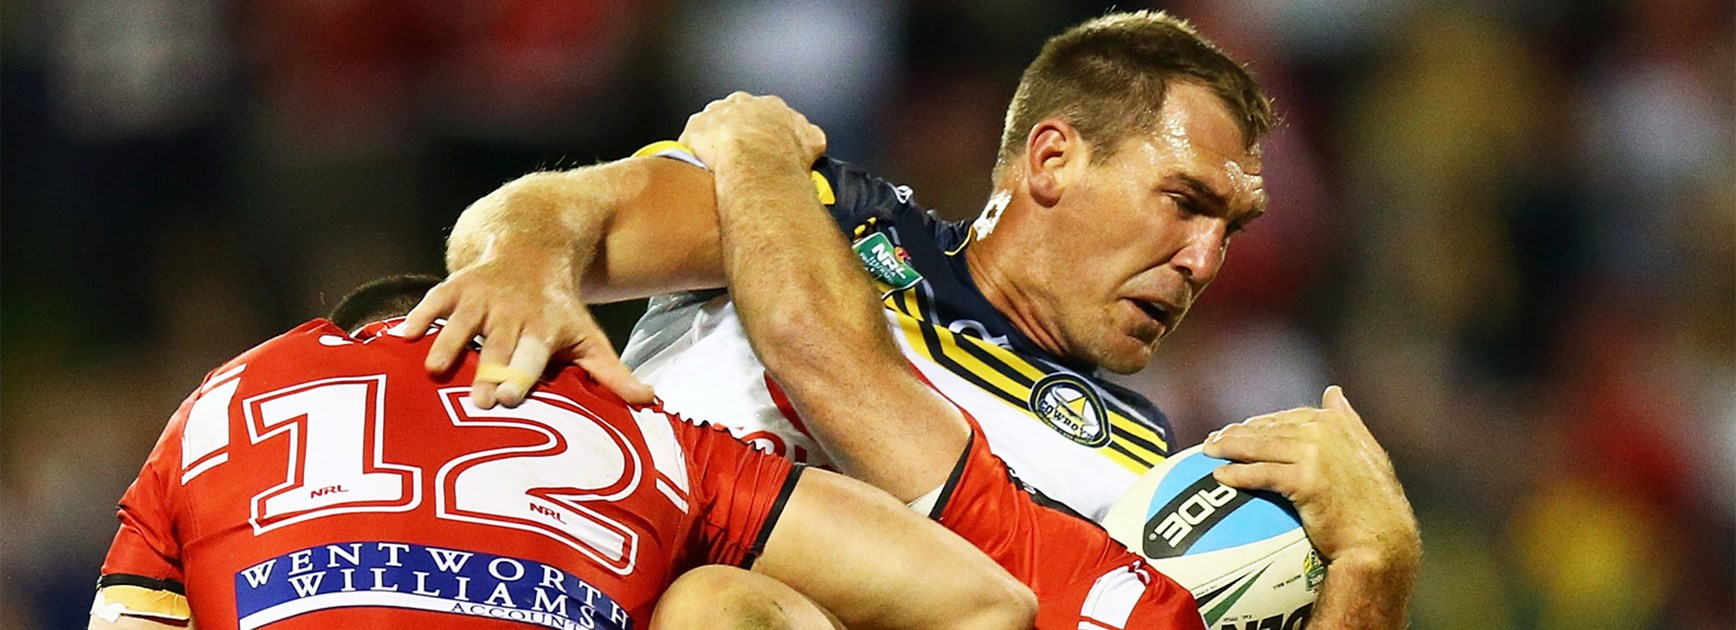 North Queensland's Scott Bolton returned from a fishing injury against the Dragons in Round 17.